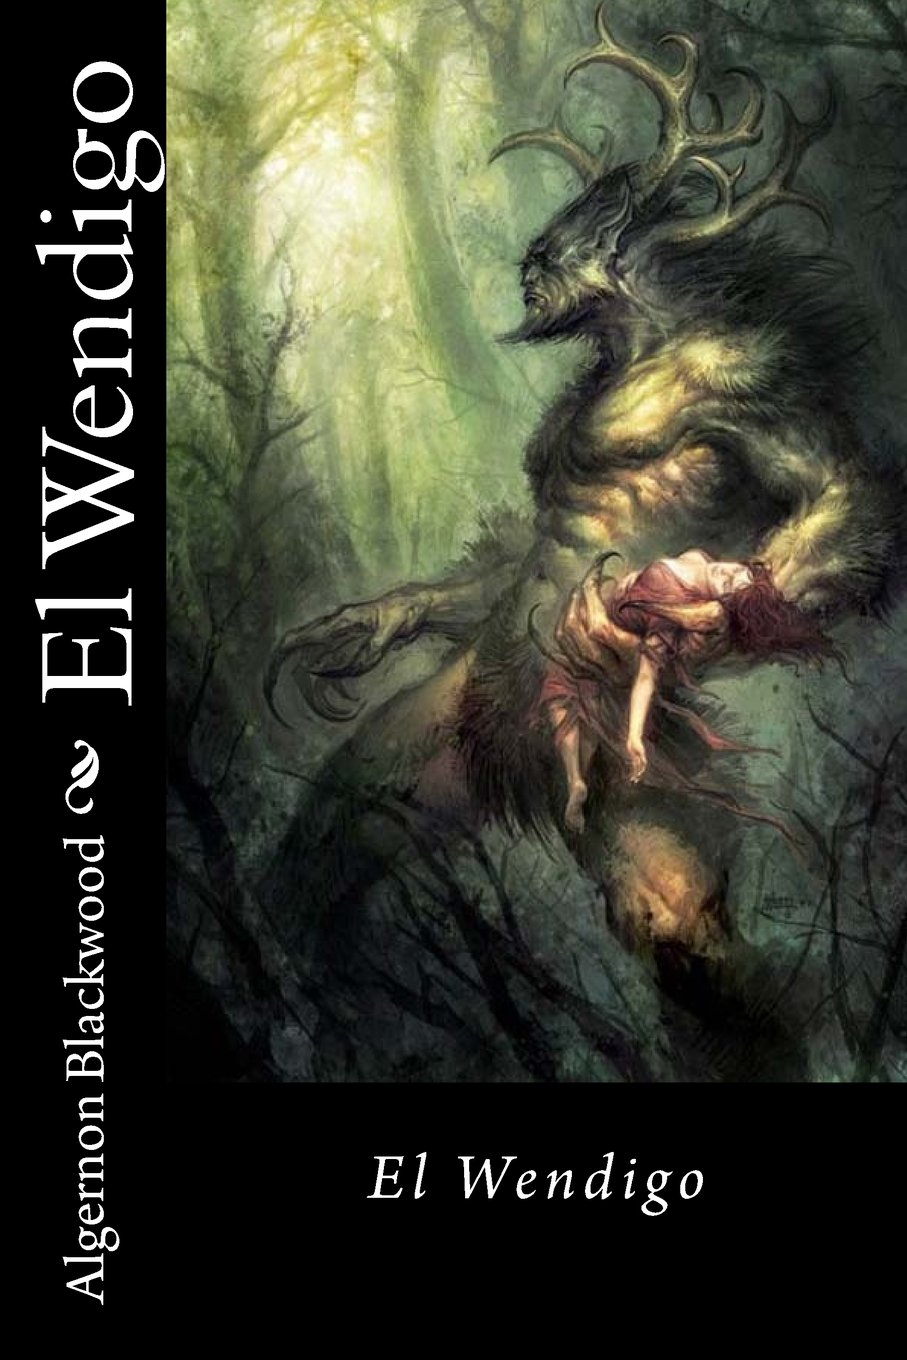 Buy El Wendigo Spanish Edition Book Online At Low Prices In India El Wendigo Spanish Edition Reviews Ratings Amazon In